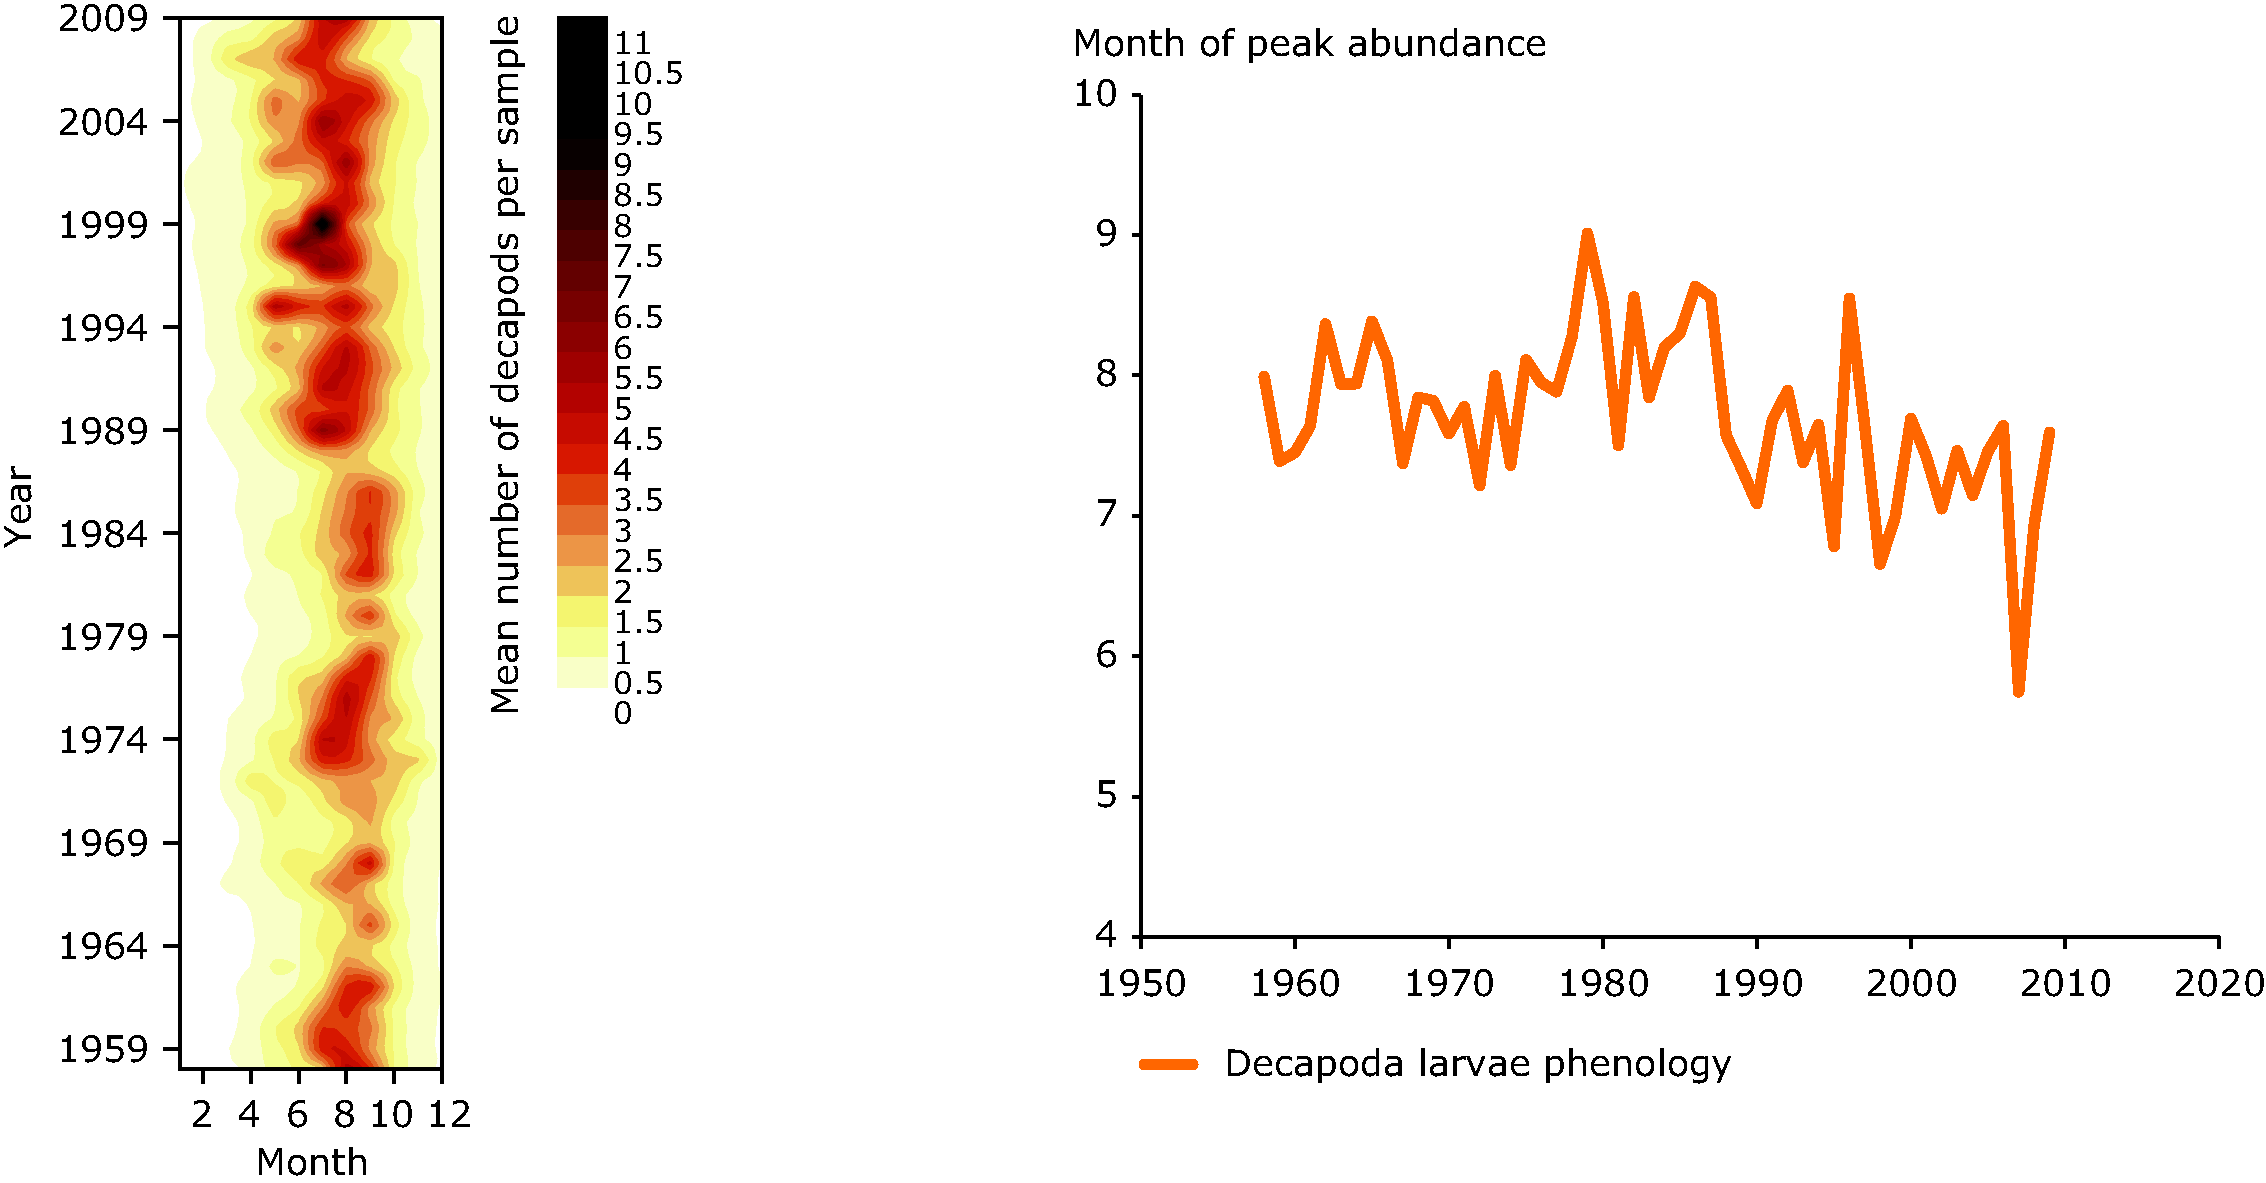 Decapoda larvae abundance and phenology in the central North Sea